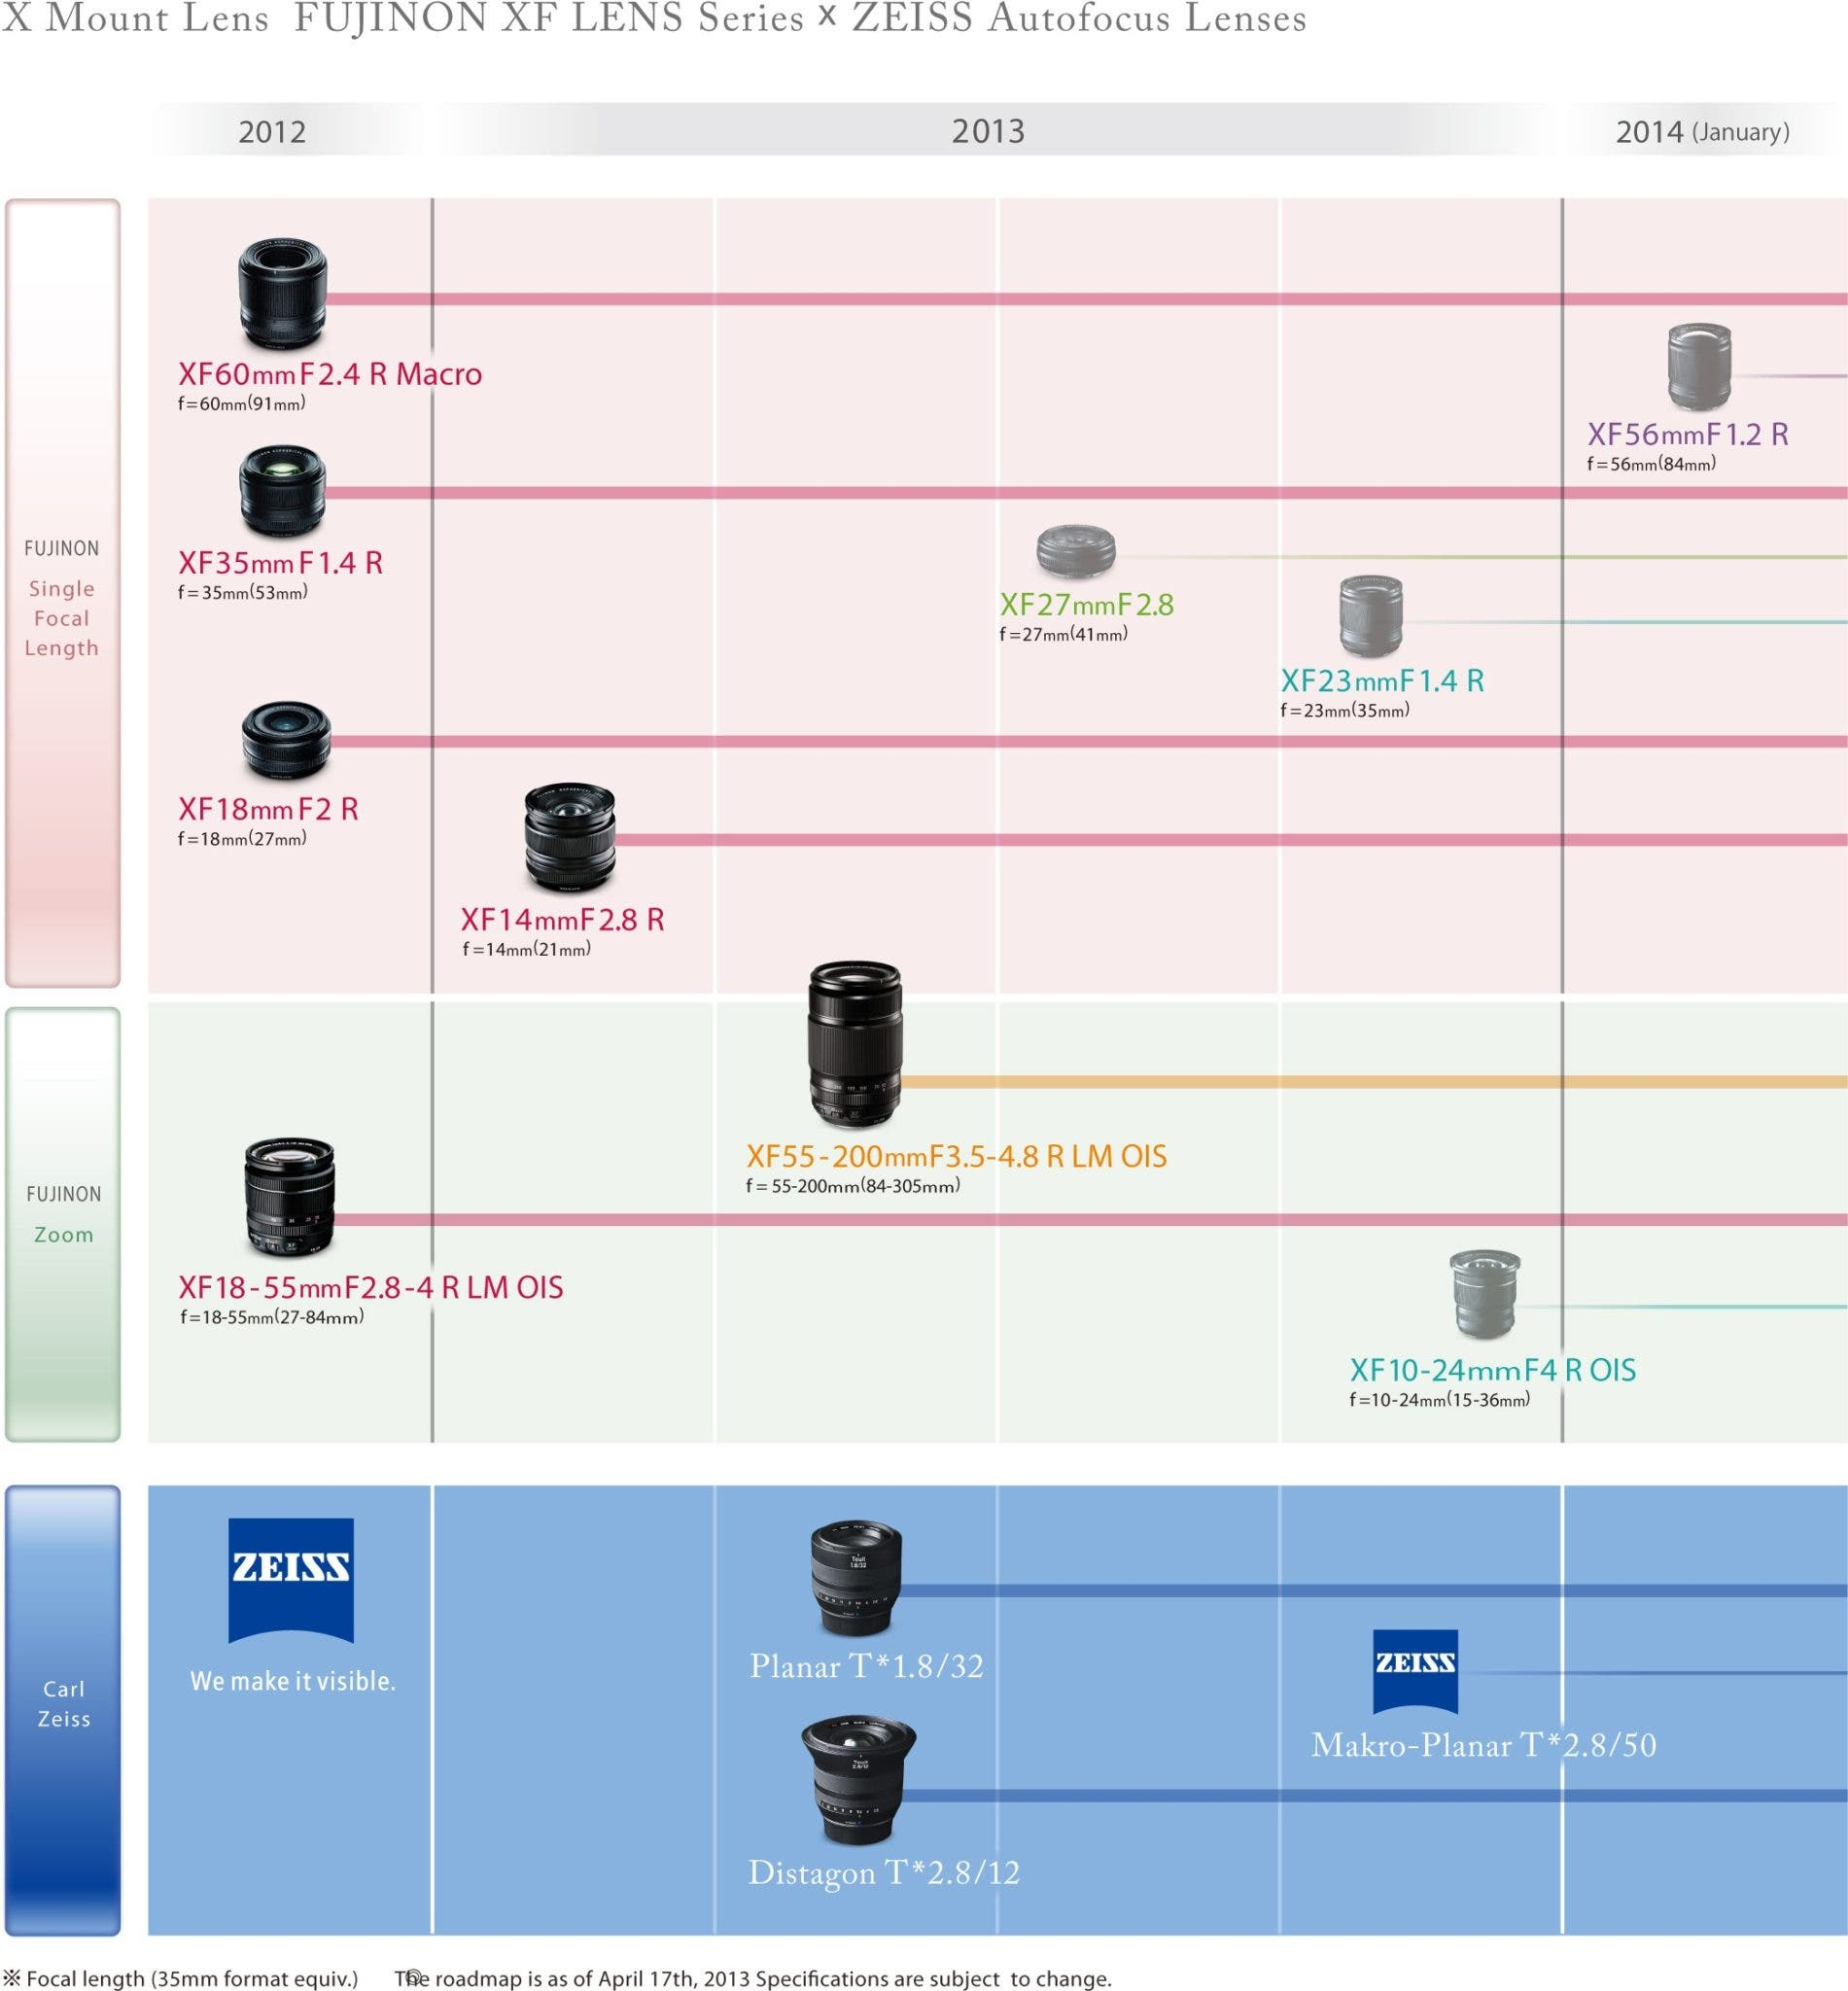 Fujifilm Announces New Lens Roadmap, Lens and Firmware - The